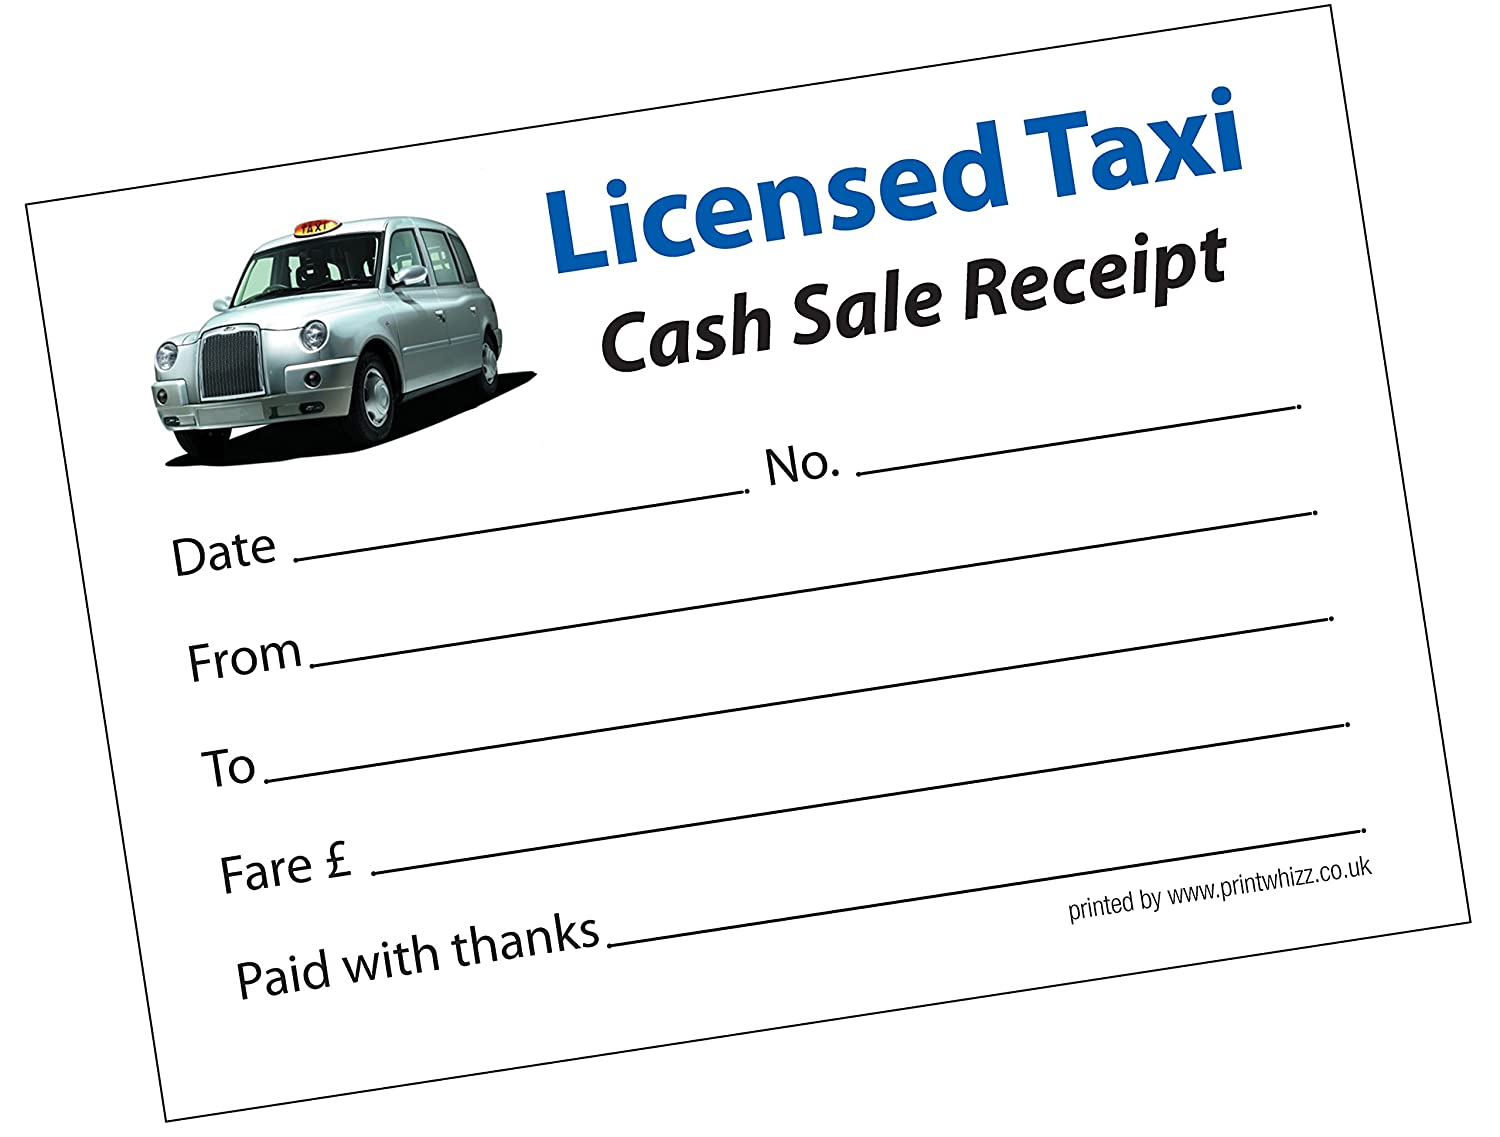 Cab Receipt on Printable Bill Of Sale As Is Template